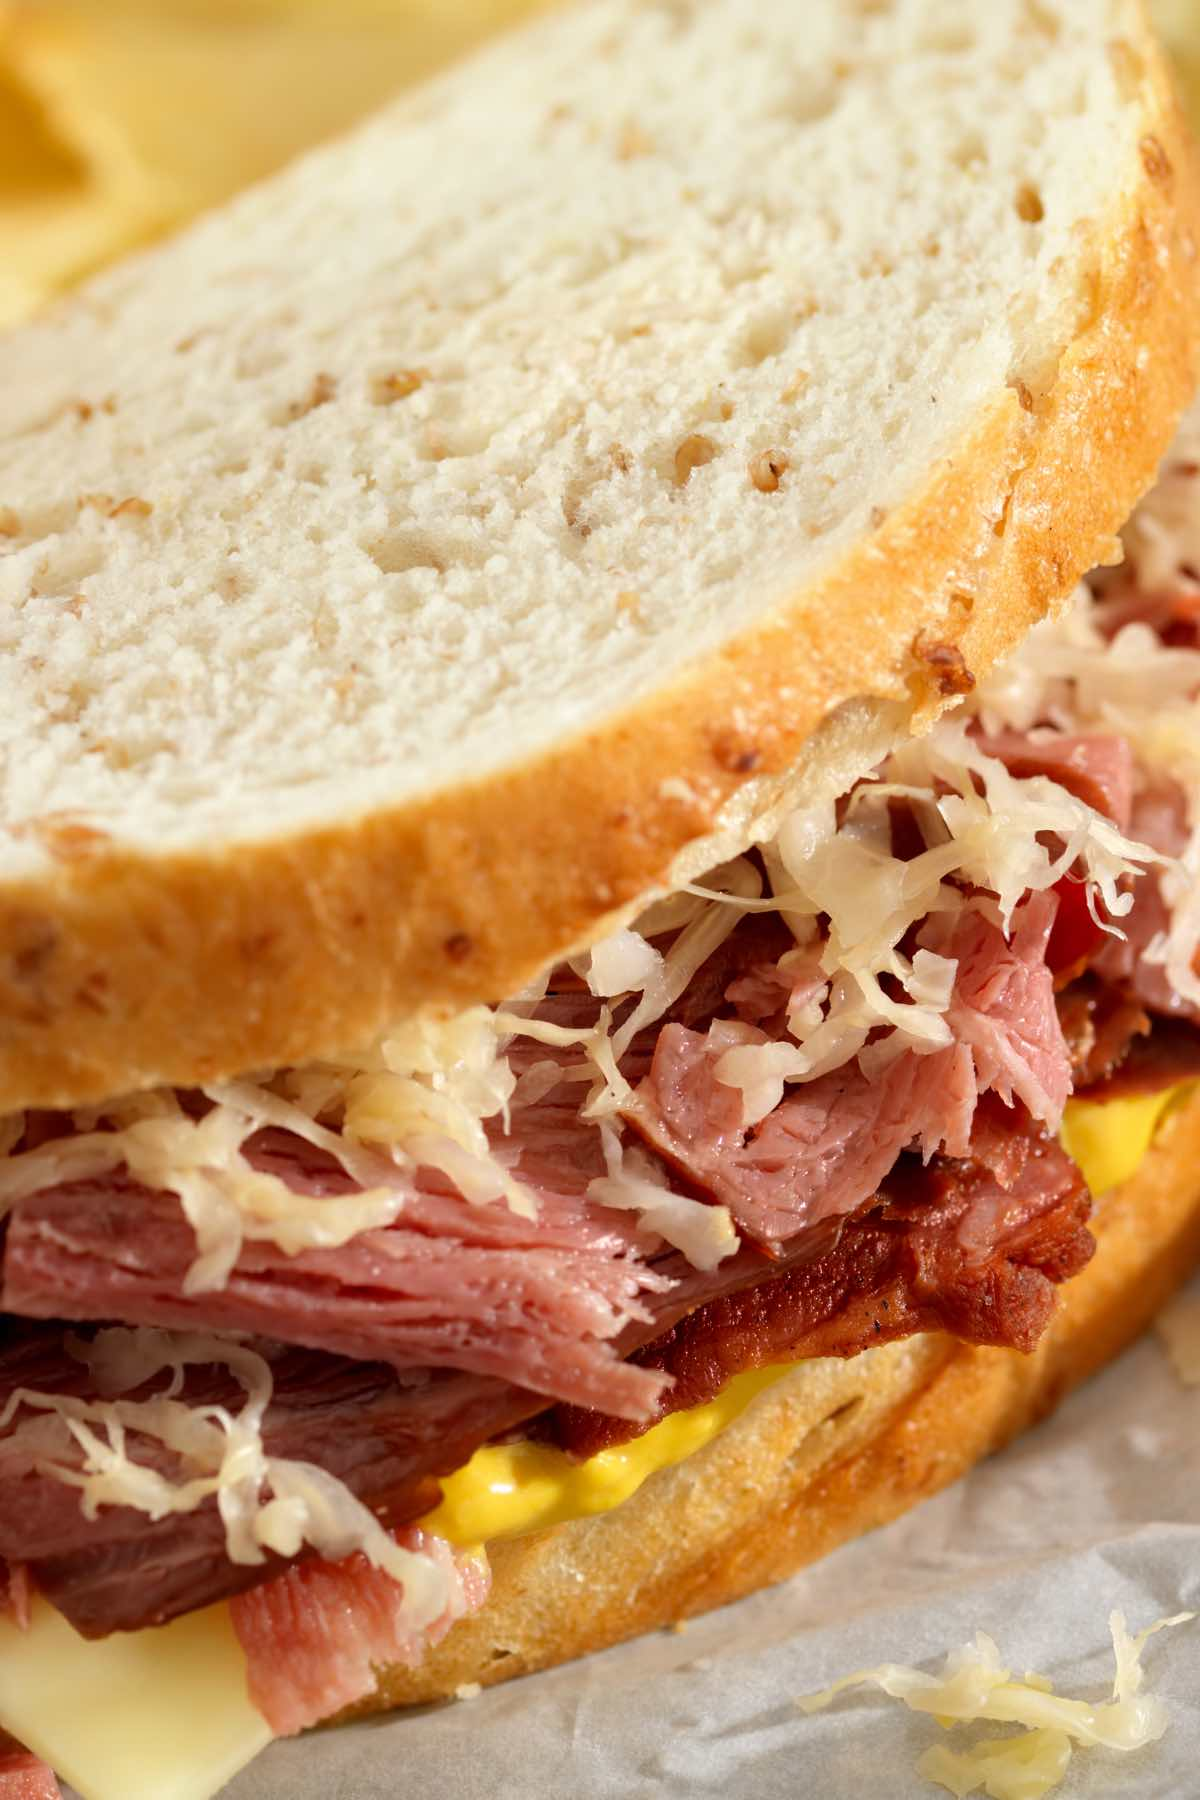 The ultimate Pastrami Sandwich piled high with thinly sliced pastrami, Swiss cheese, and coleslaw. These Artisan sandwiches are perfect for a hearty meal. Serve hot or cold with your favorite fries and veggies!